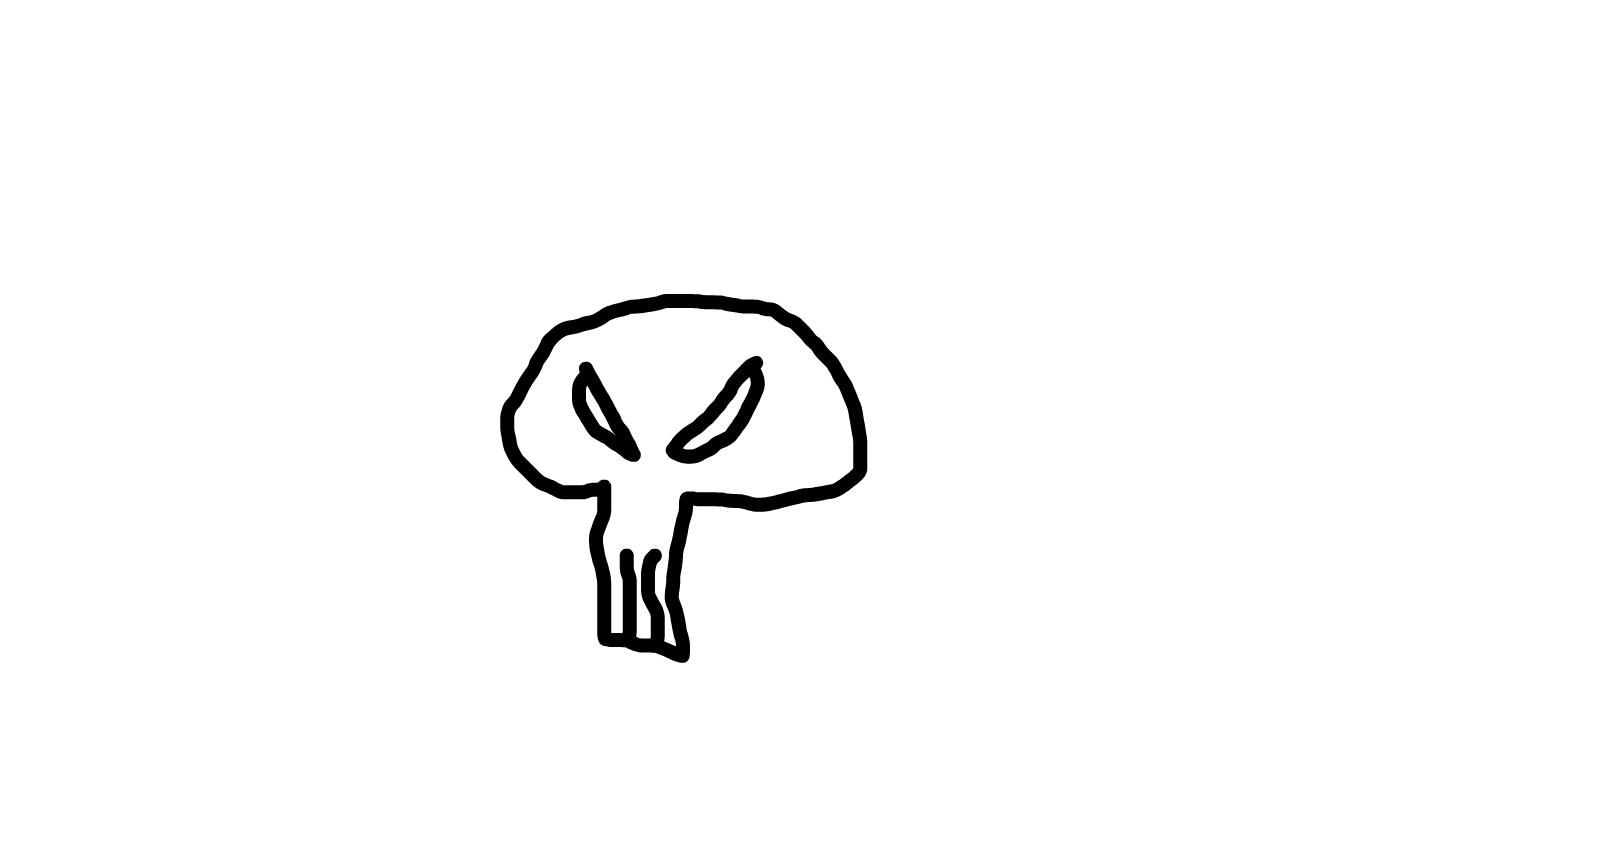 my first and most dumb skull ever